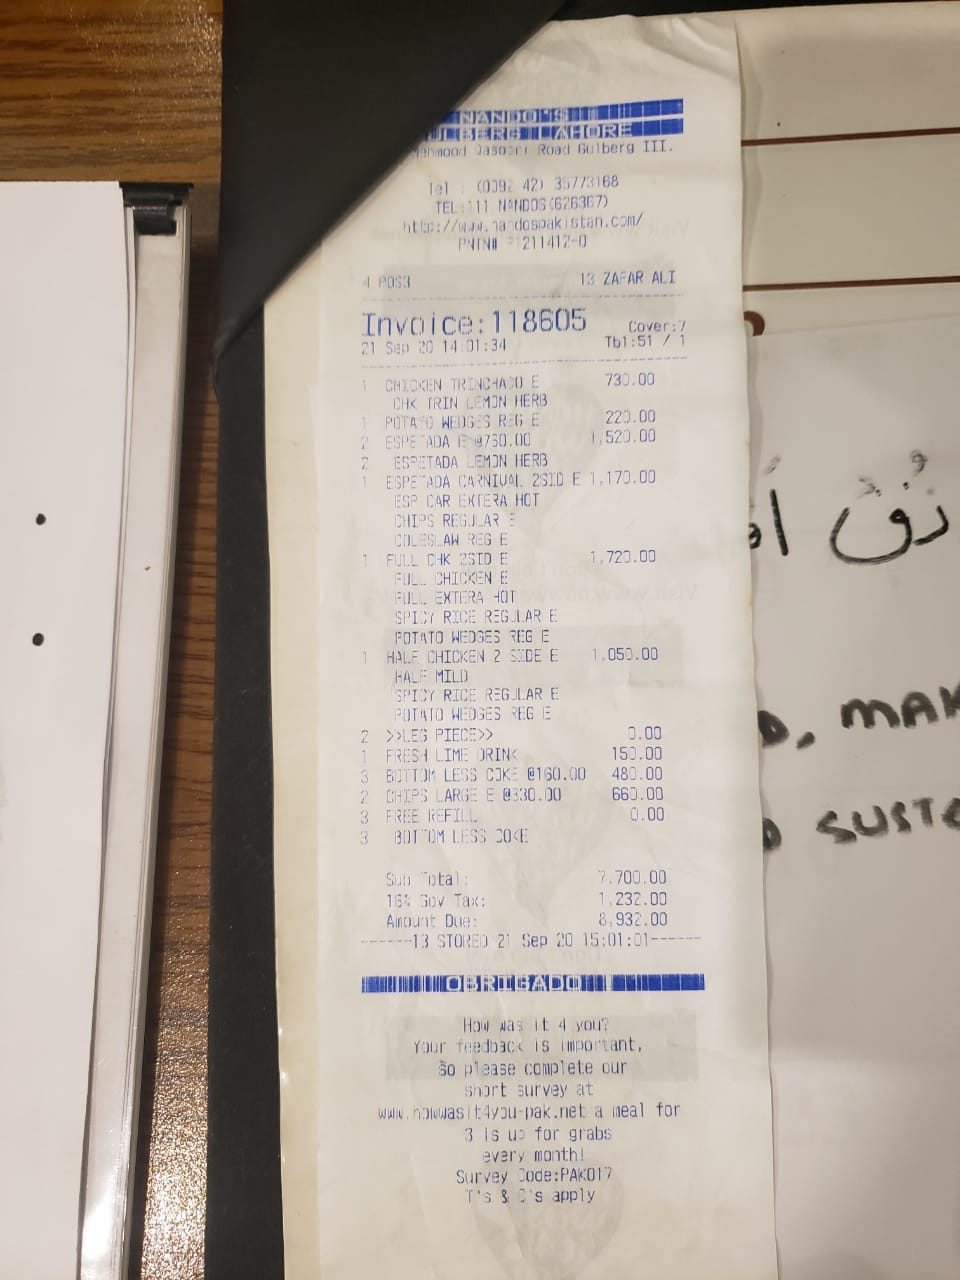 receipt for transaction - GST overcharged by 11%